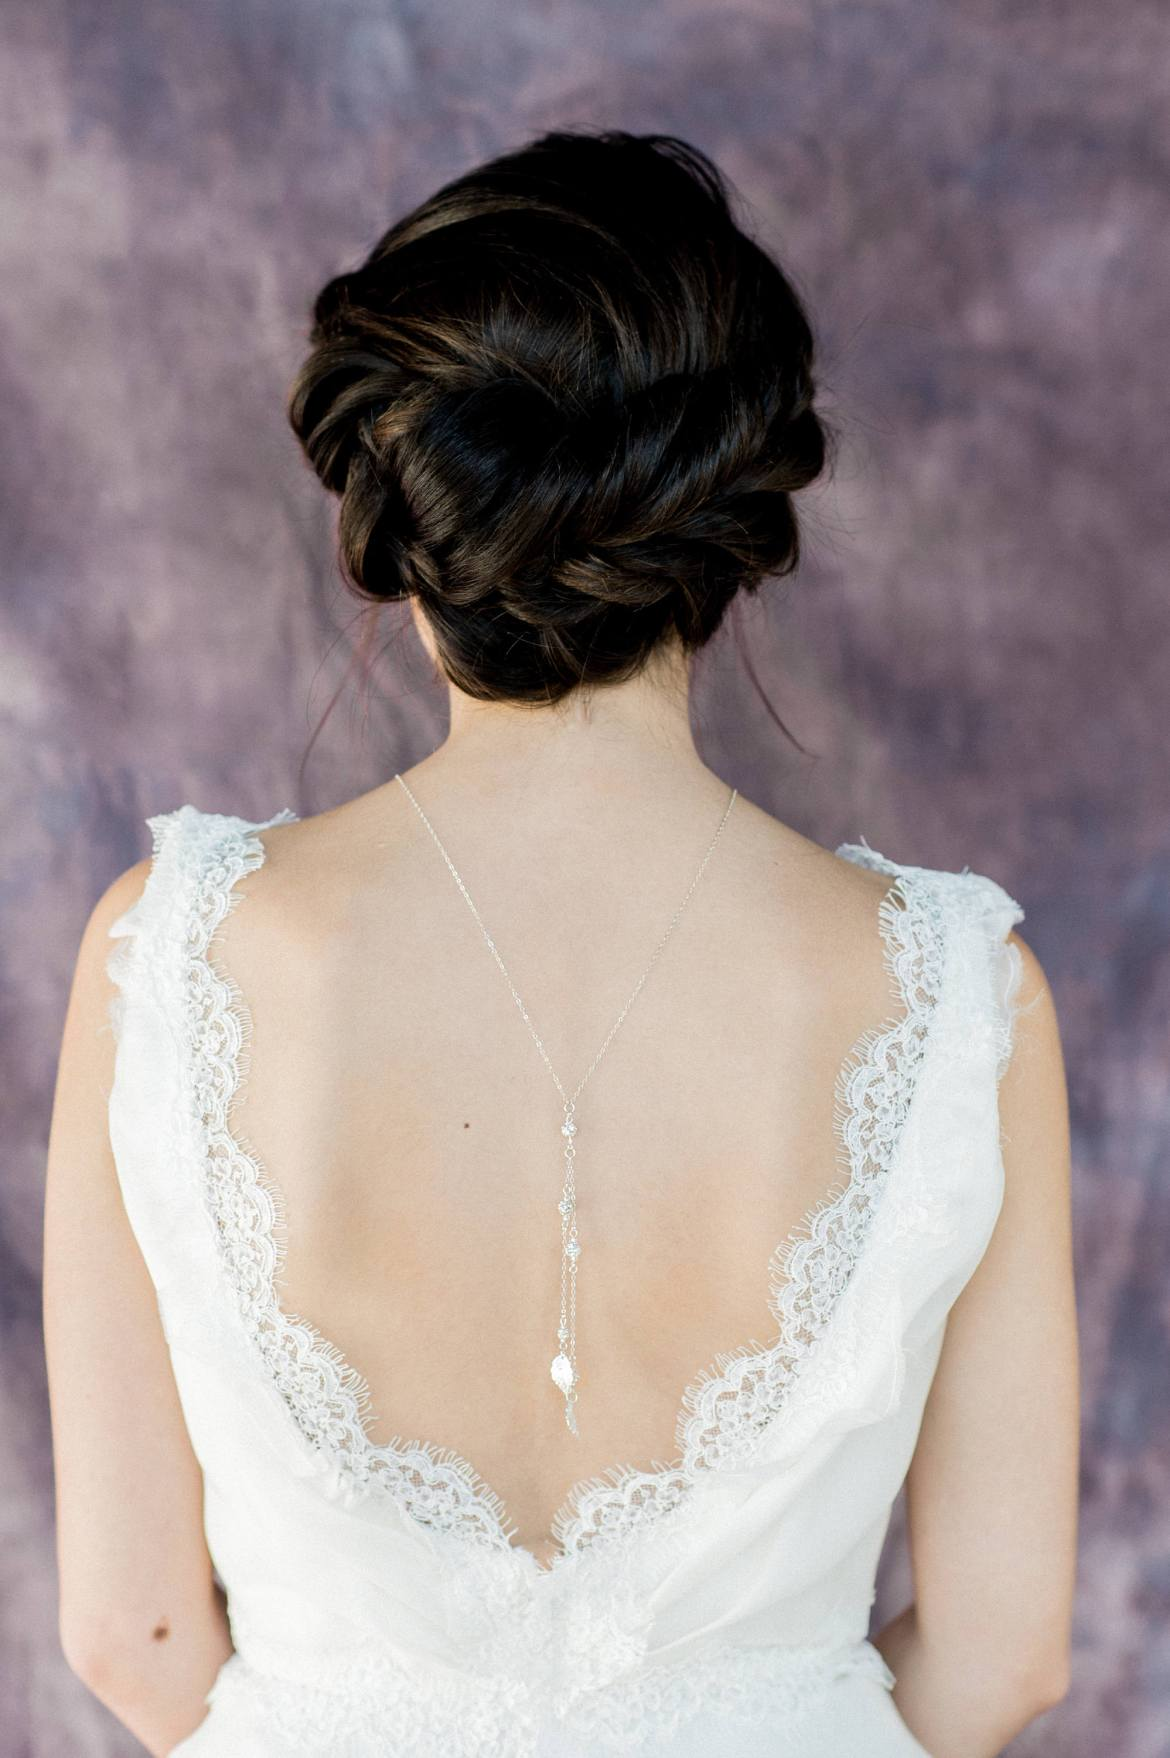 Back Necklaces: This Is The Hottest Trend for Weddings ...